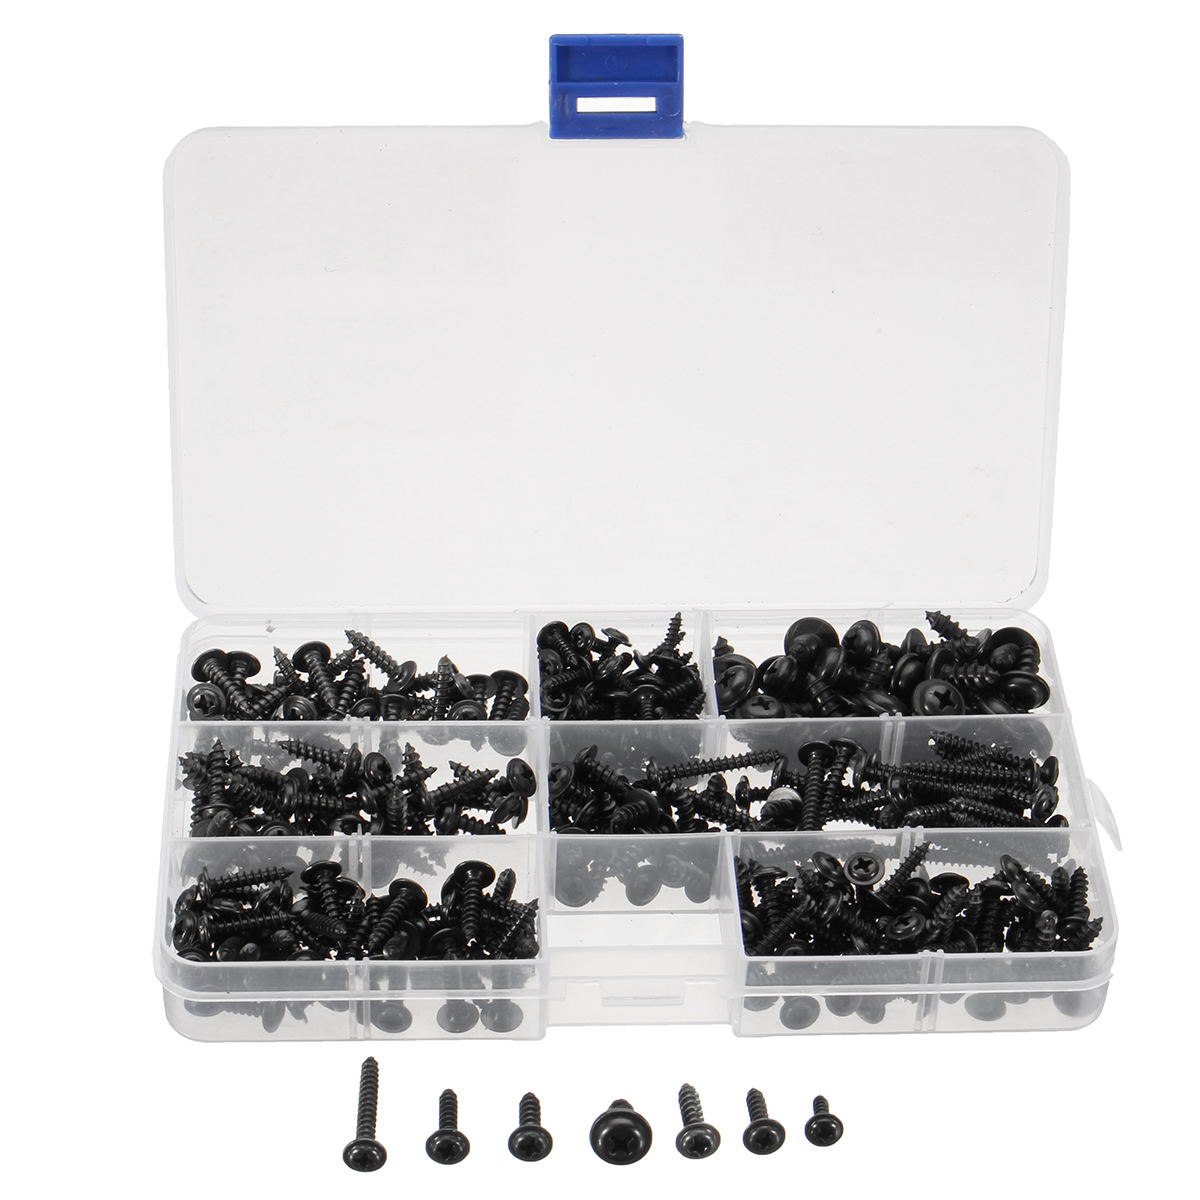 340 Assorted Pieces Stainless Steel Screws Set Assortment Round Head Self Tapping Screws Box Kit No. 4 6 8 10